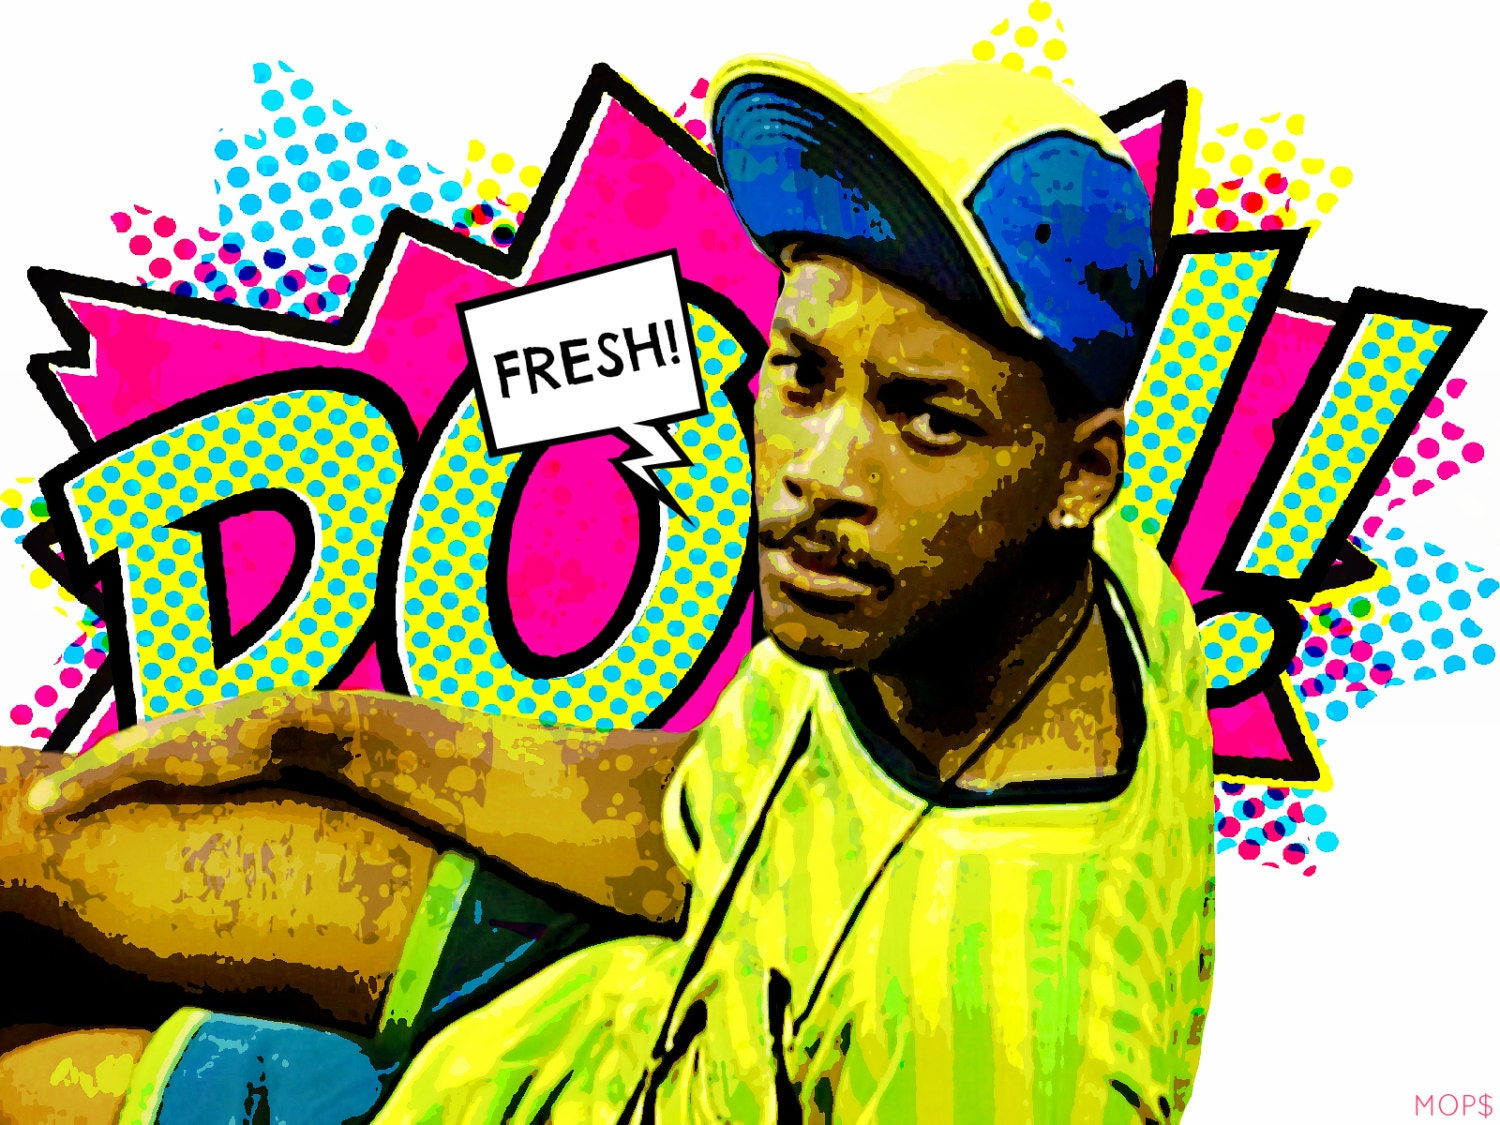 Fresh prince of bel air 8x10 digital illustration by for Fresh pictures